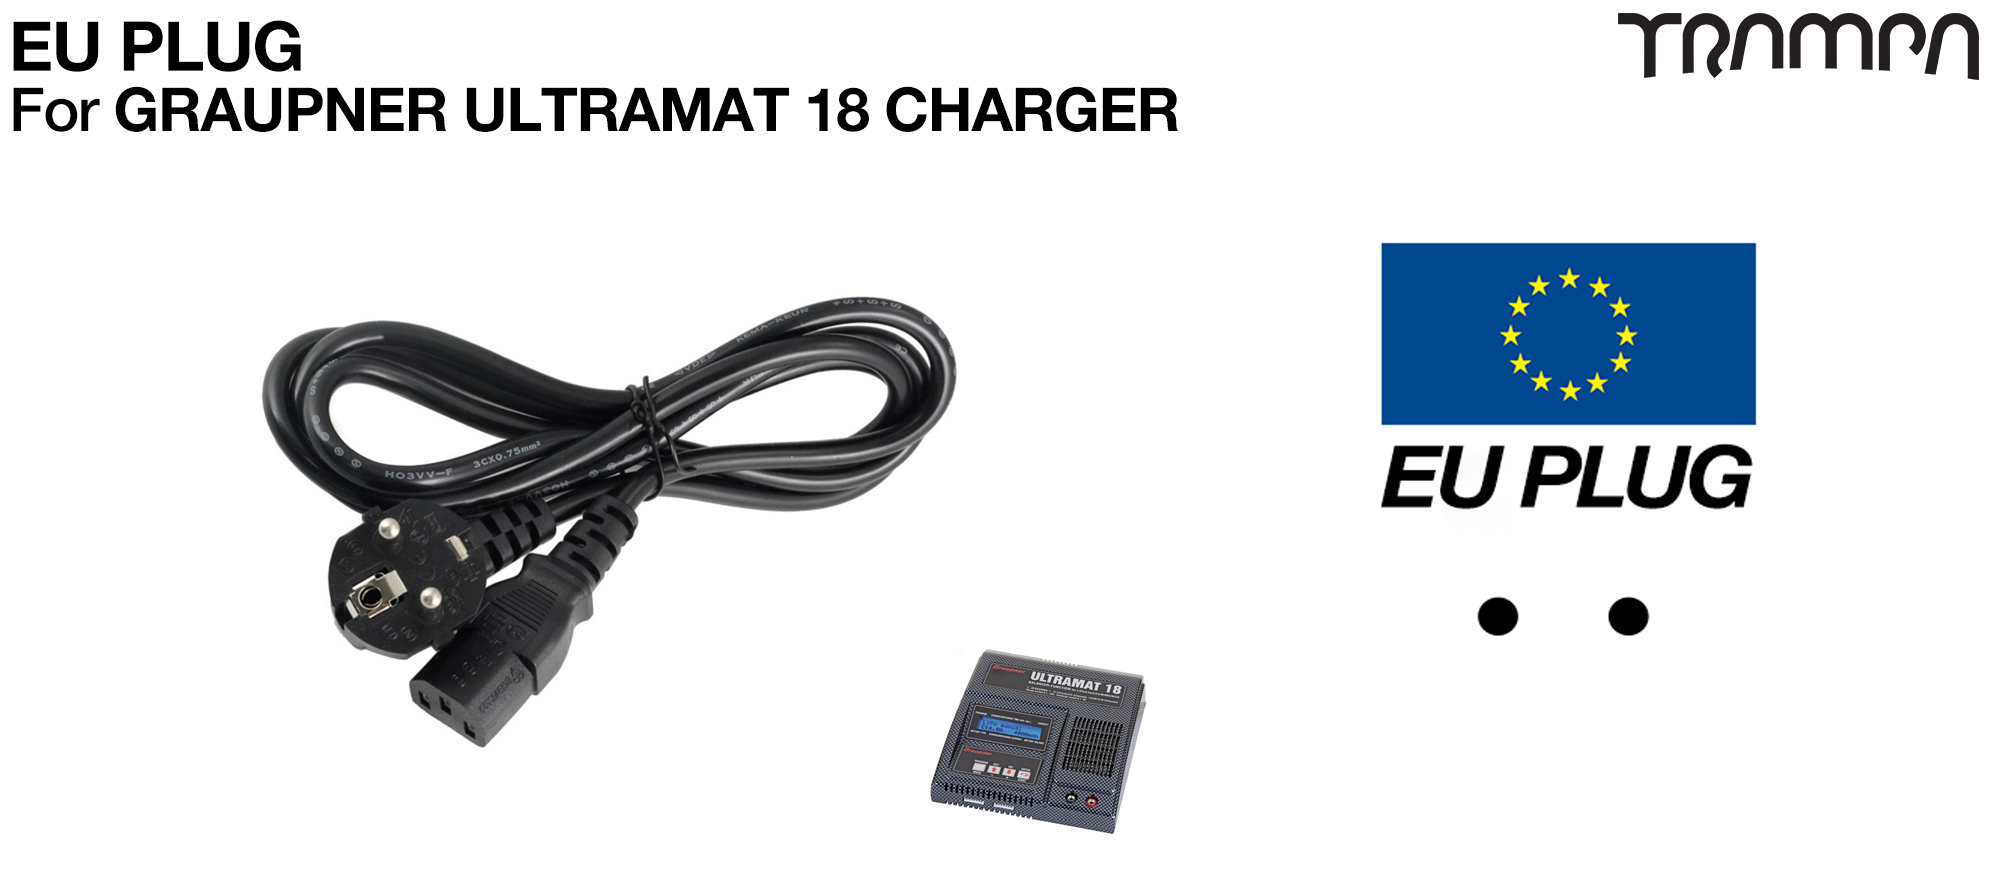 EURO Plug for Graupner charger